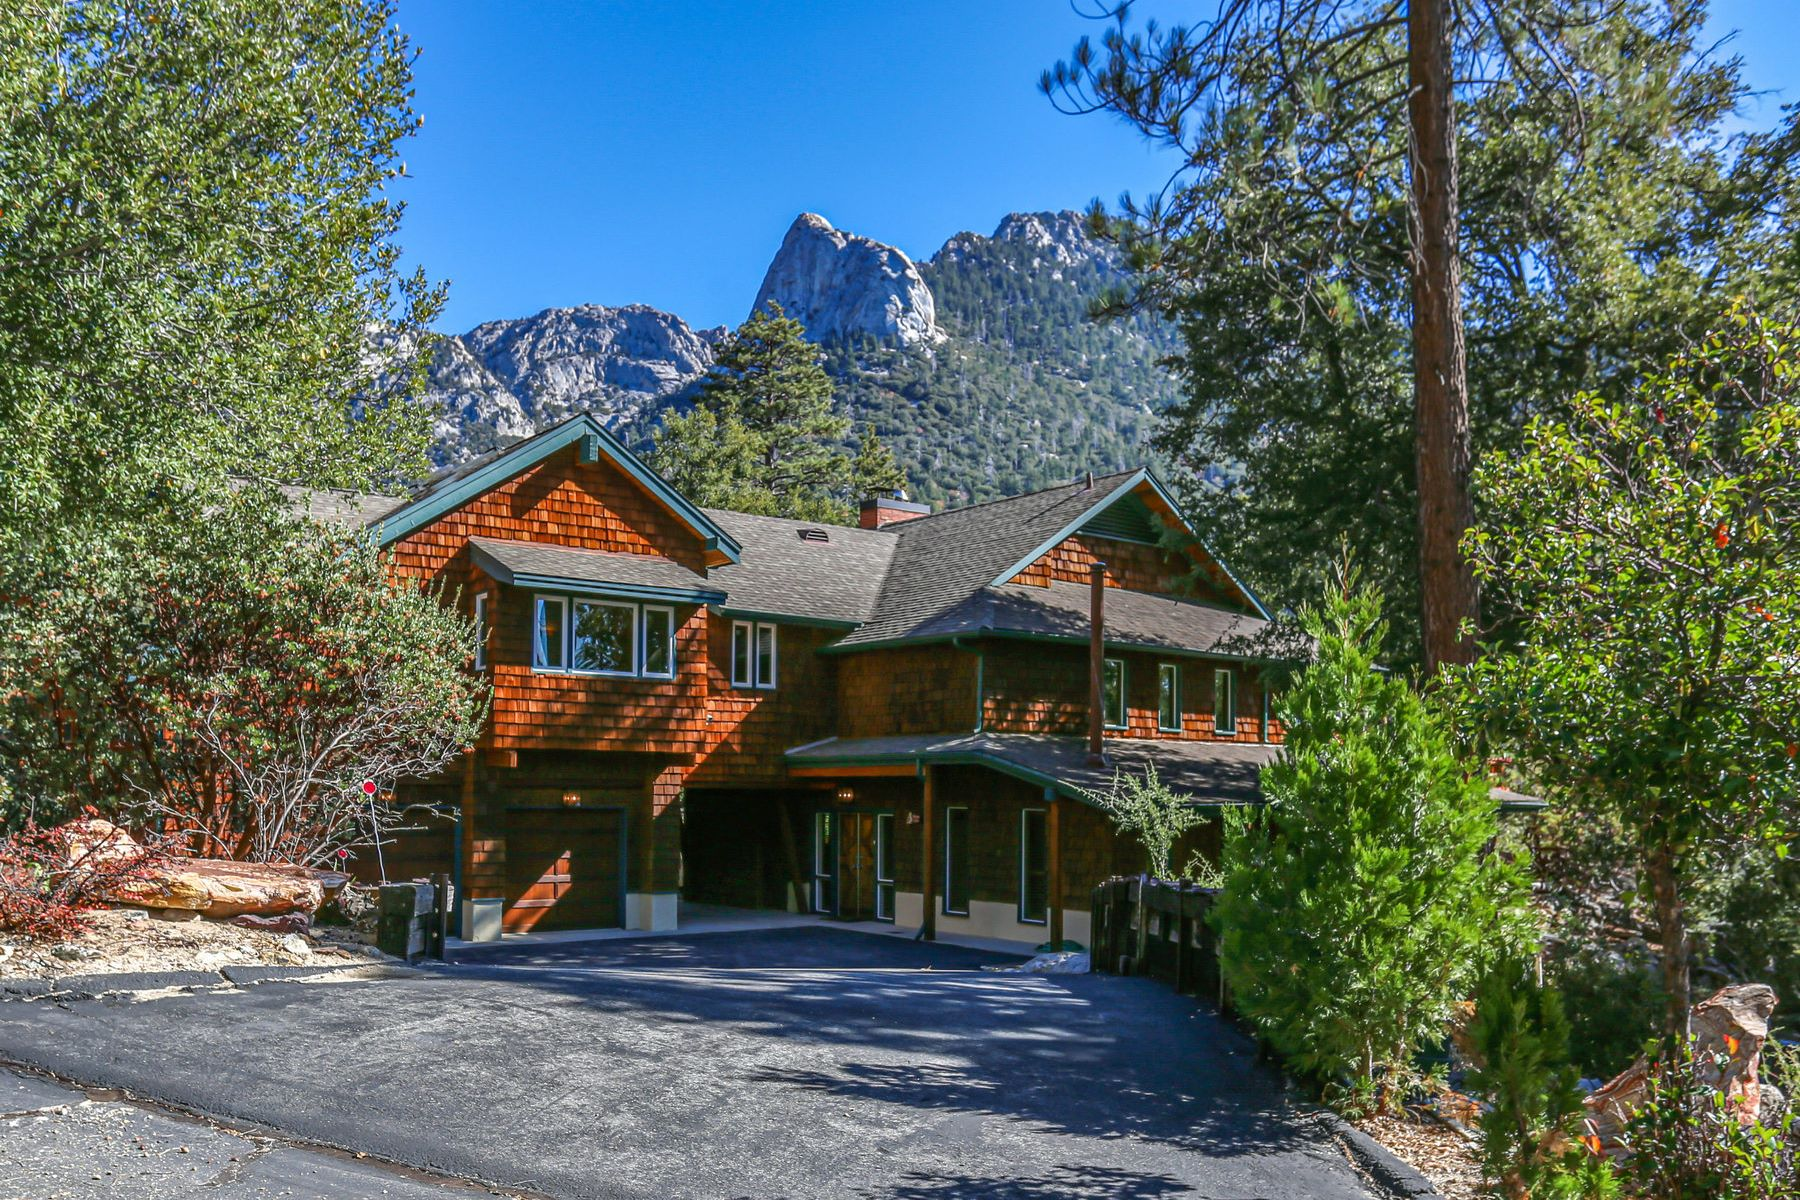 Single Family Homes for Sale at 54790 Forest Haven Drive Idyllwild, California 92549 United States